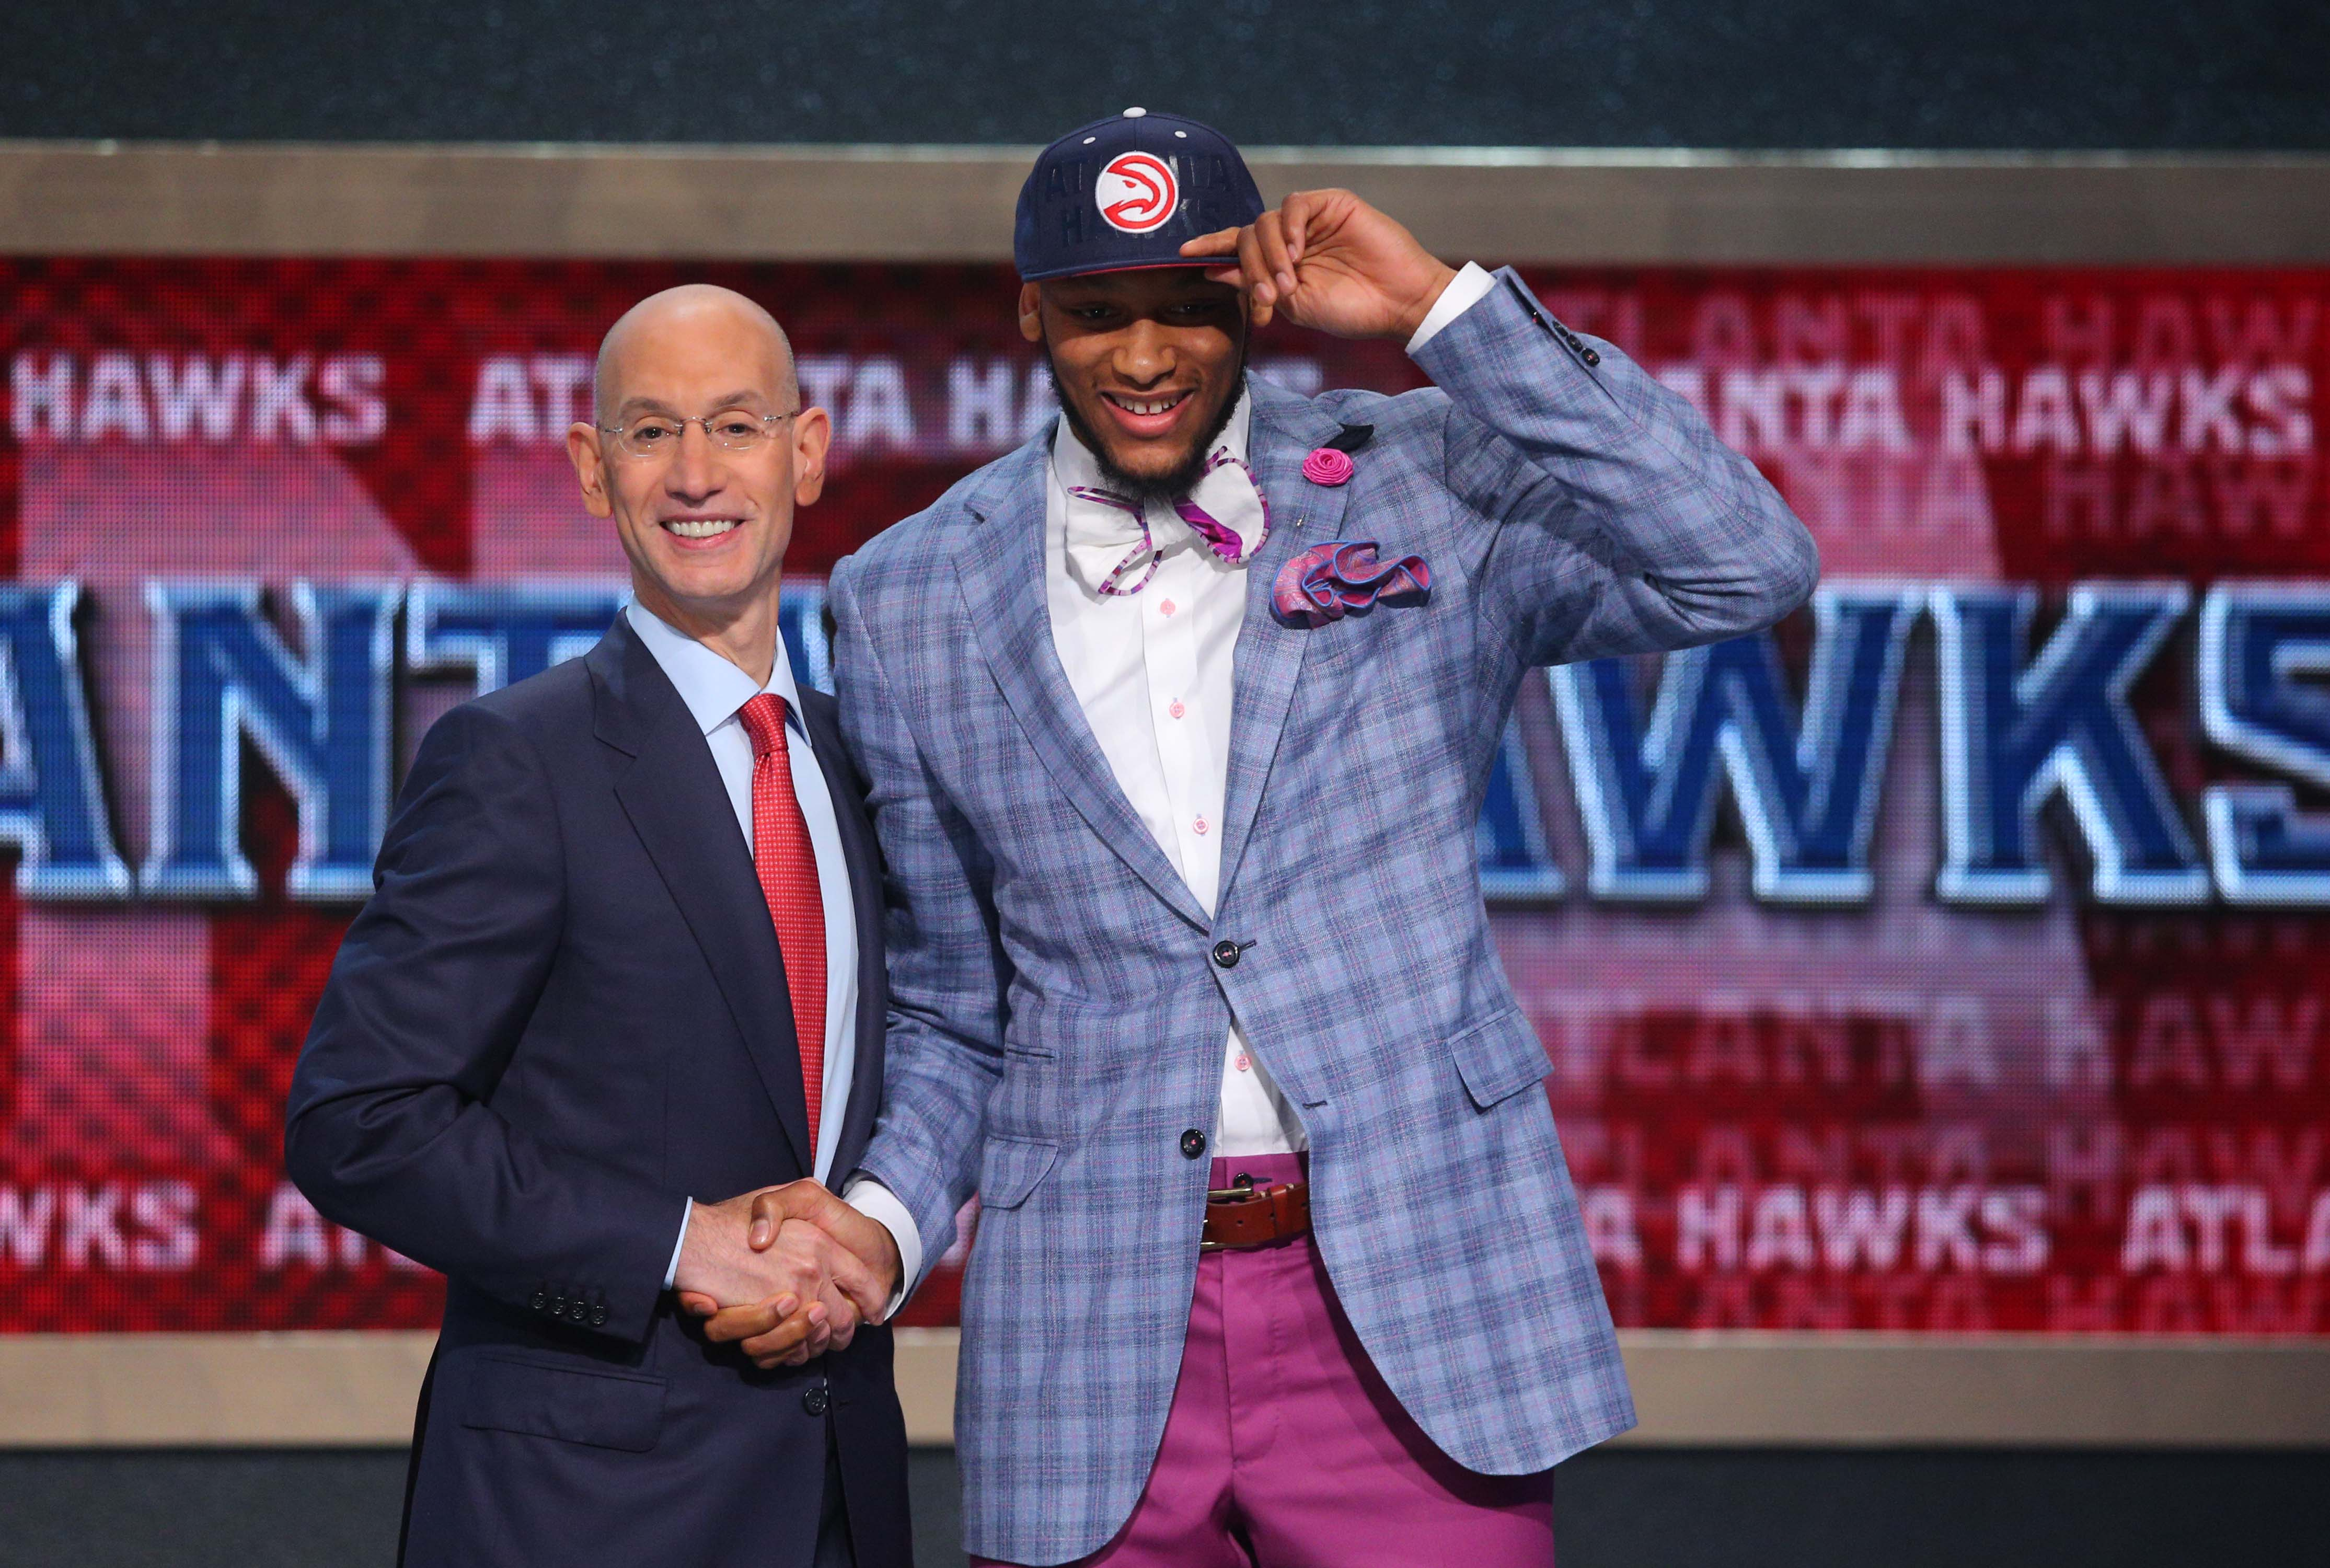 7969750-nba-nba-draft